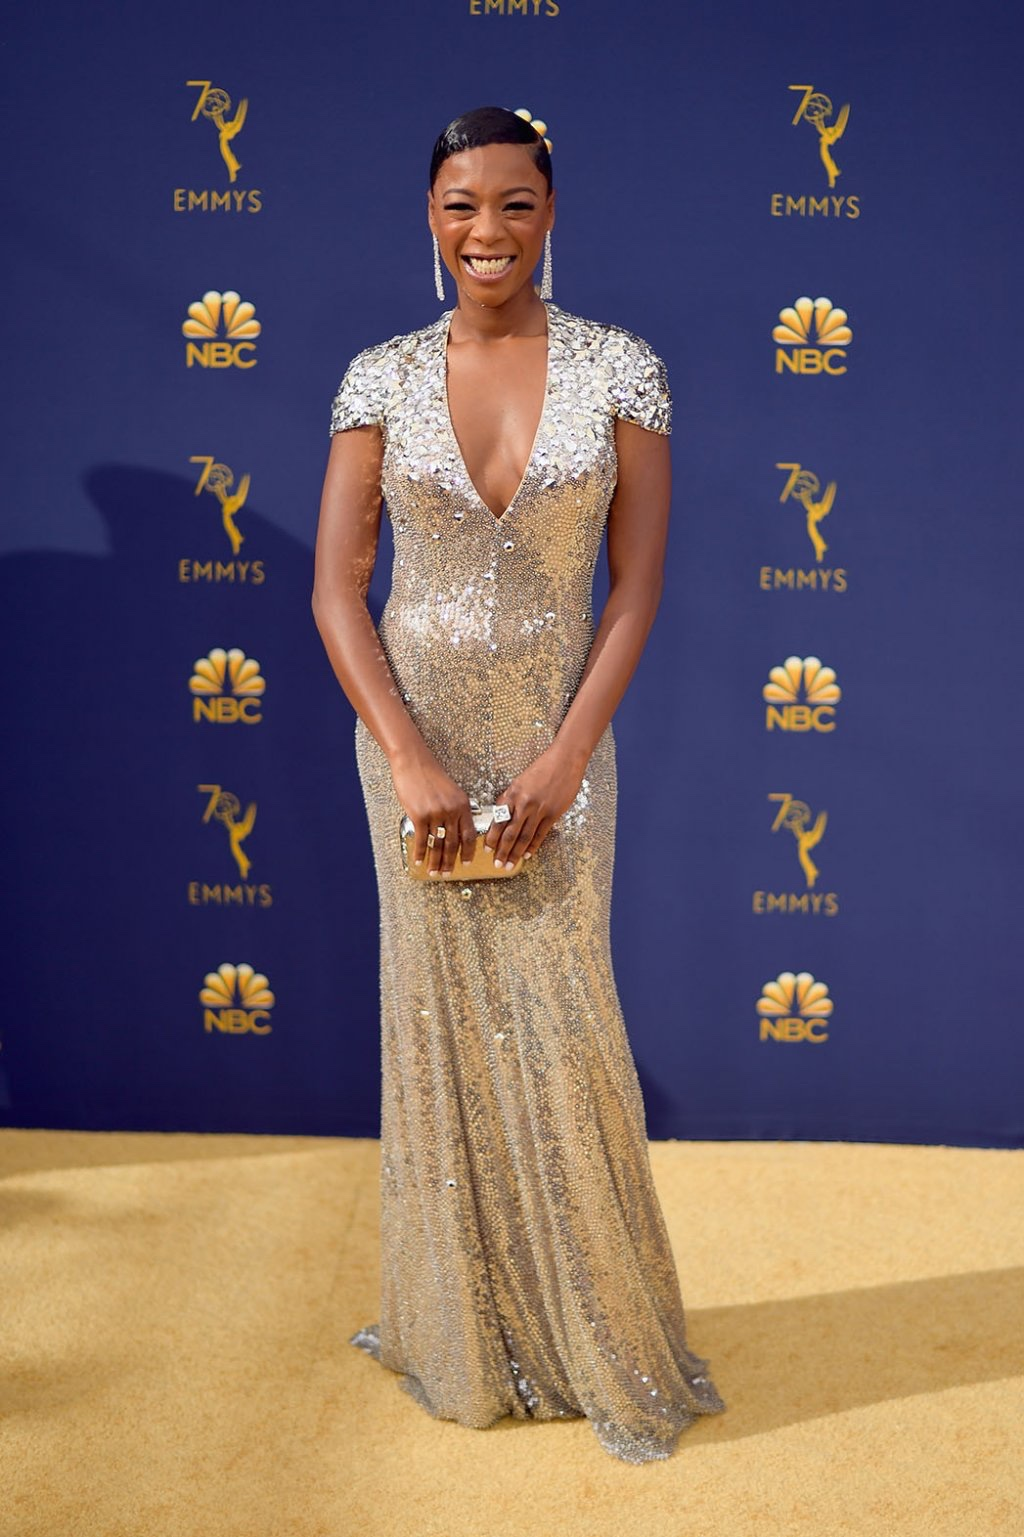 Samira Wiley in Jenny Packham, 70th Annual Primetime Emmy Awards, Betty White, Emmys 2018, Fashion, Featured, Glenn Weiss, Hannah Gadsby, highlights, Jav Svendsen, Online Exclusive, Style, The Marvellous Mrs. Maisel, top moments, We solved it, Diversity